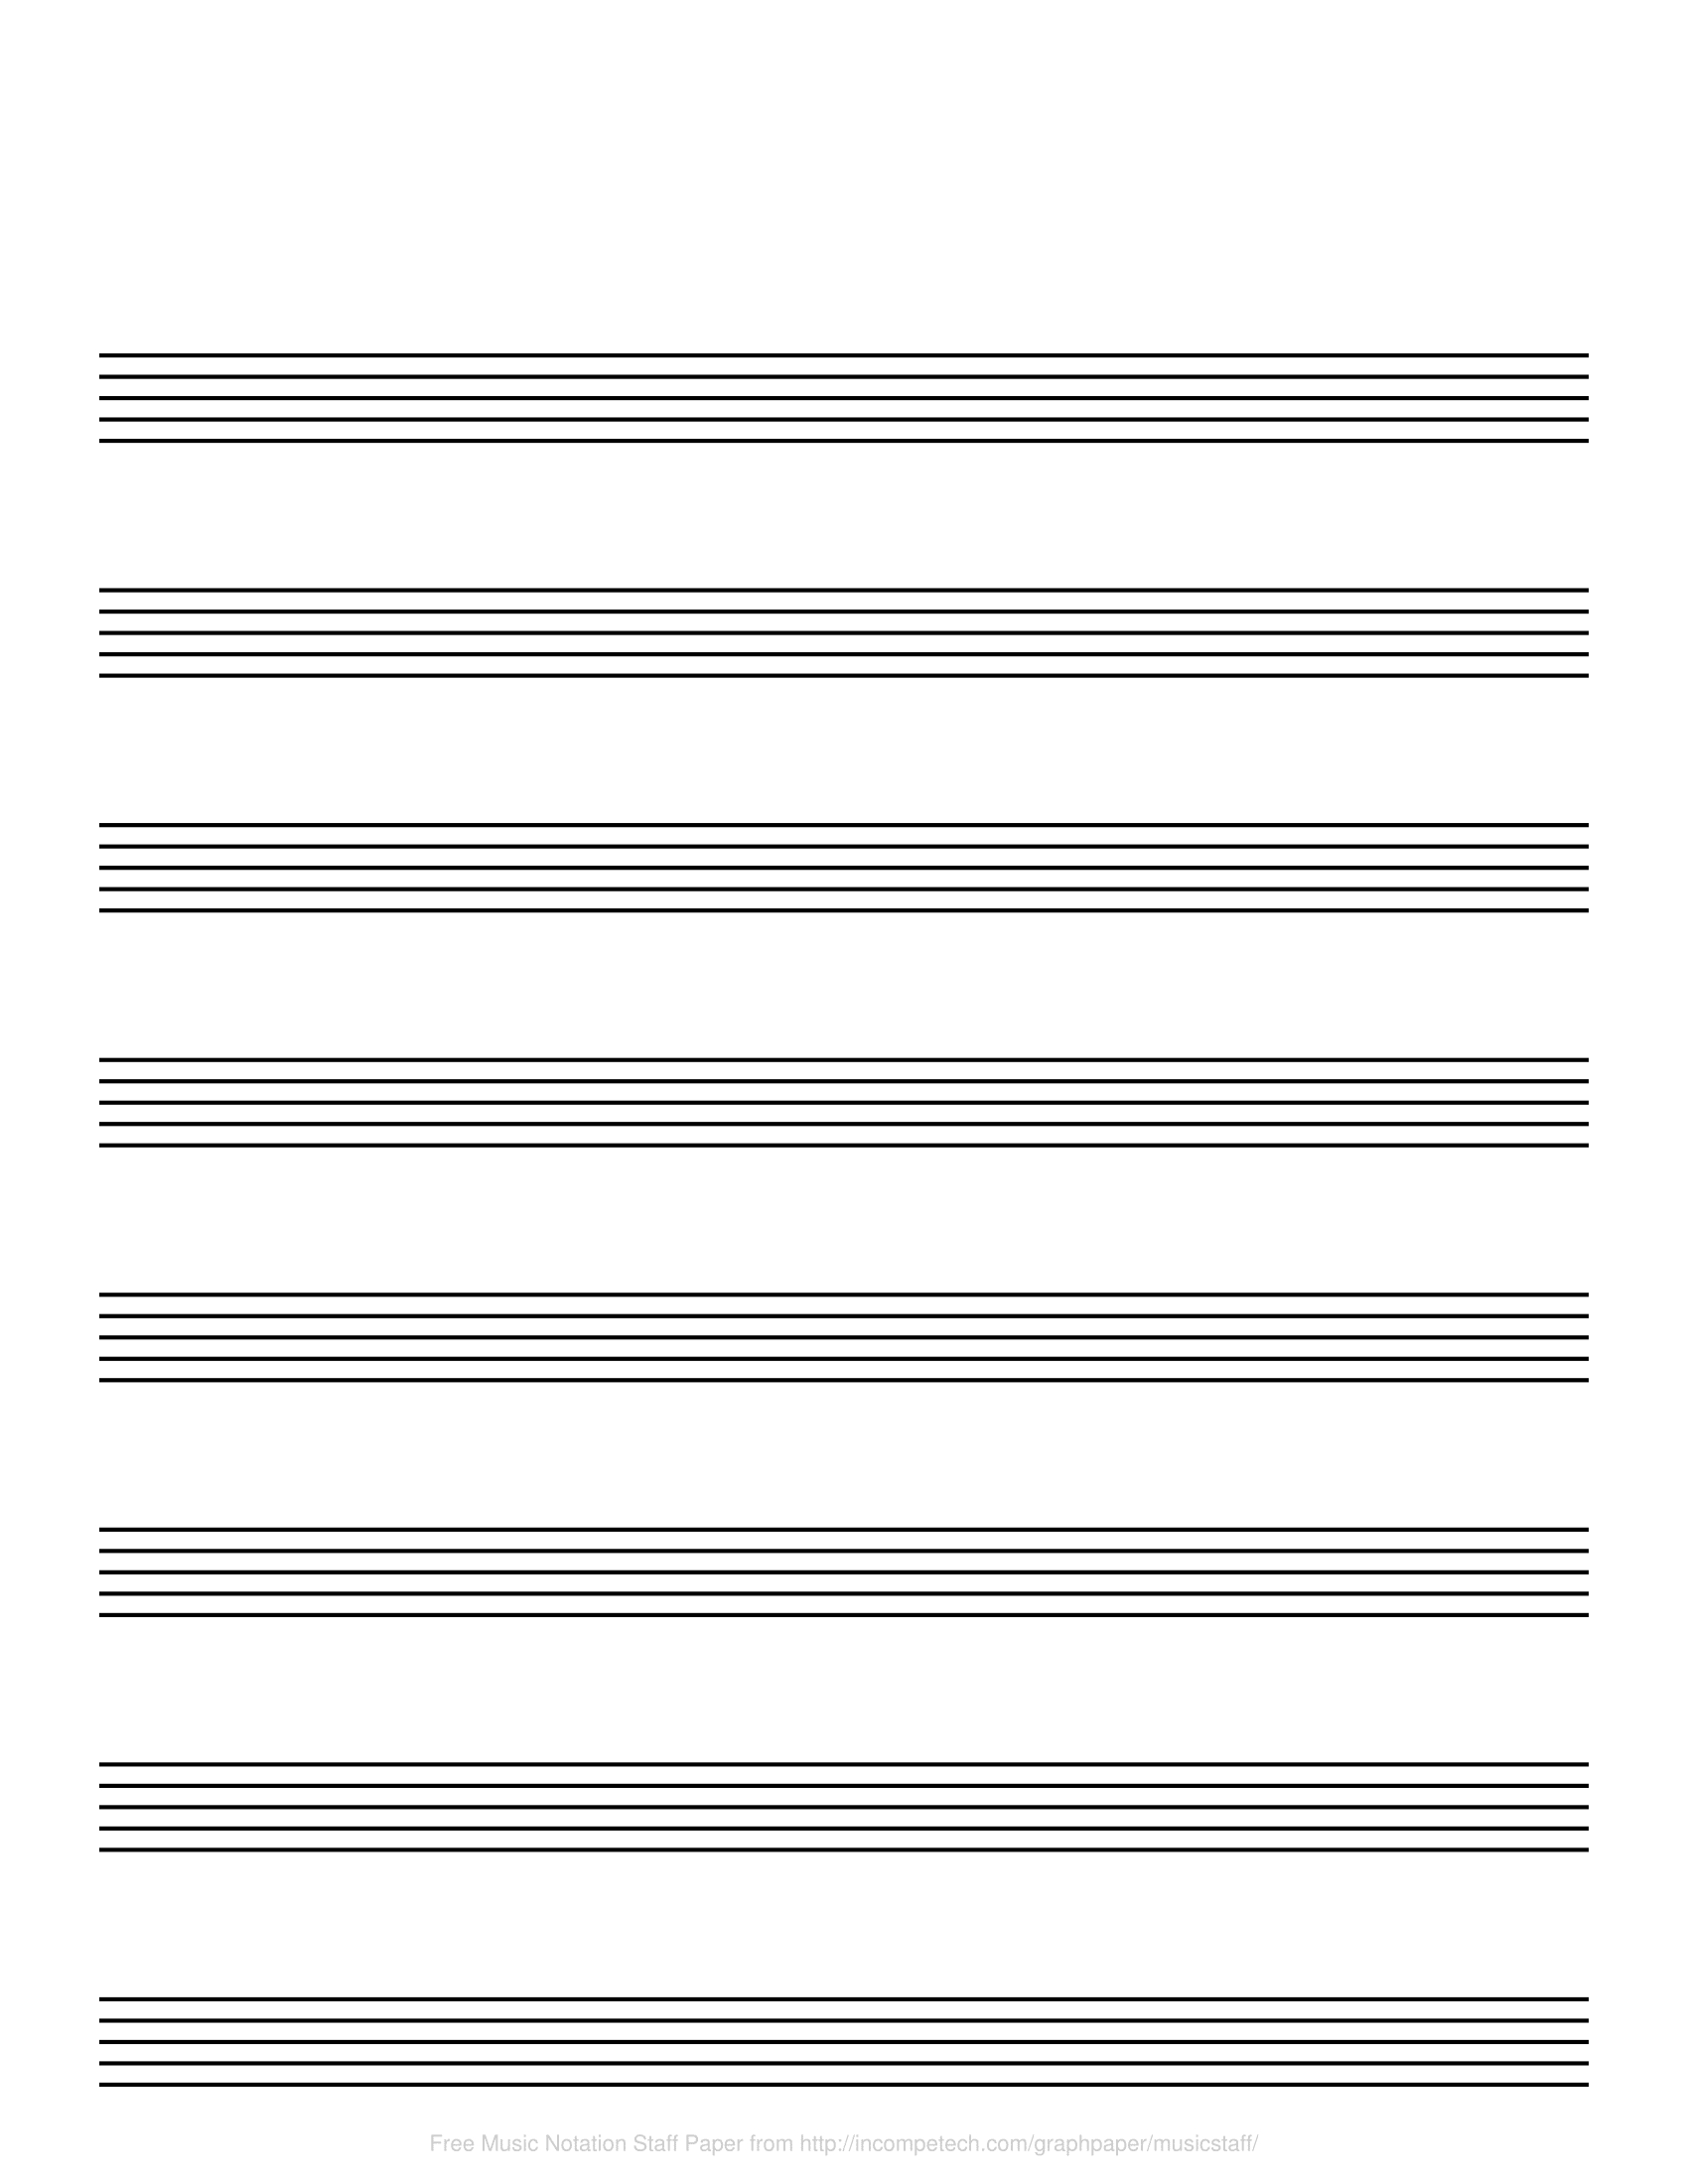 Free Online Graph Paper / Music Notation - Free Printable Music Staff